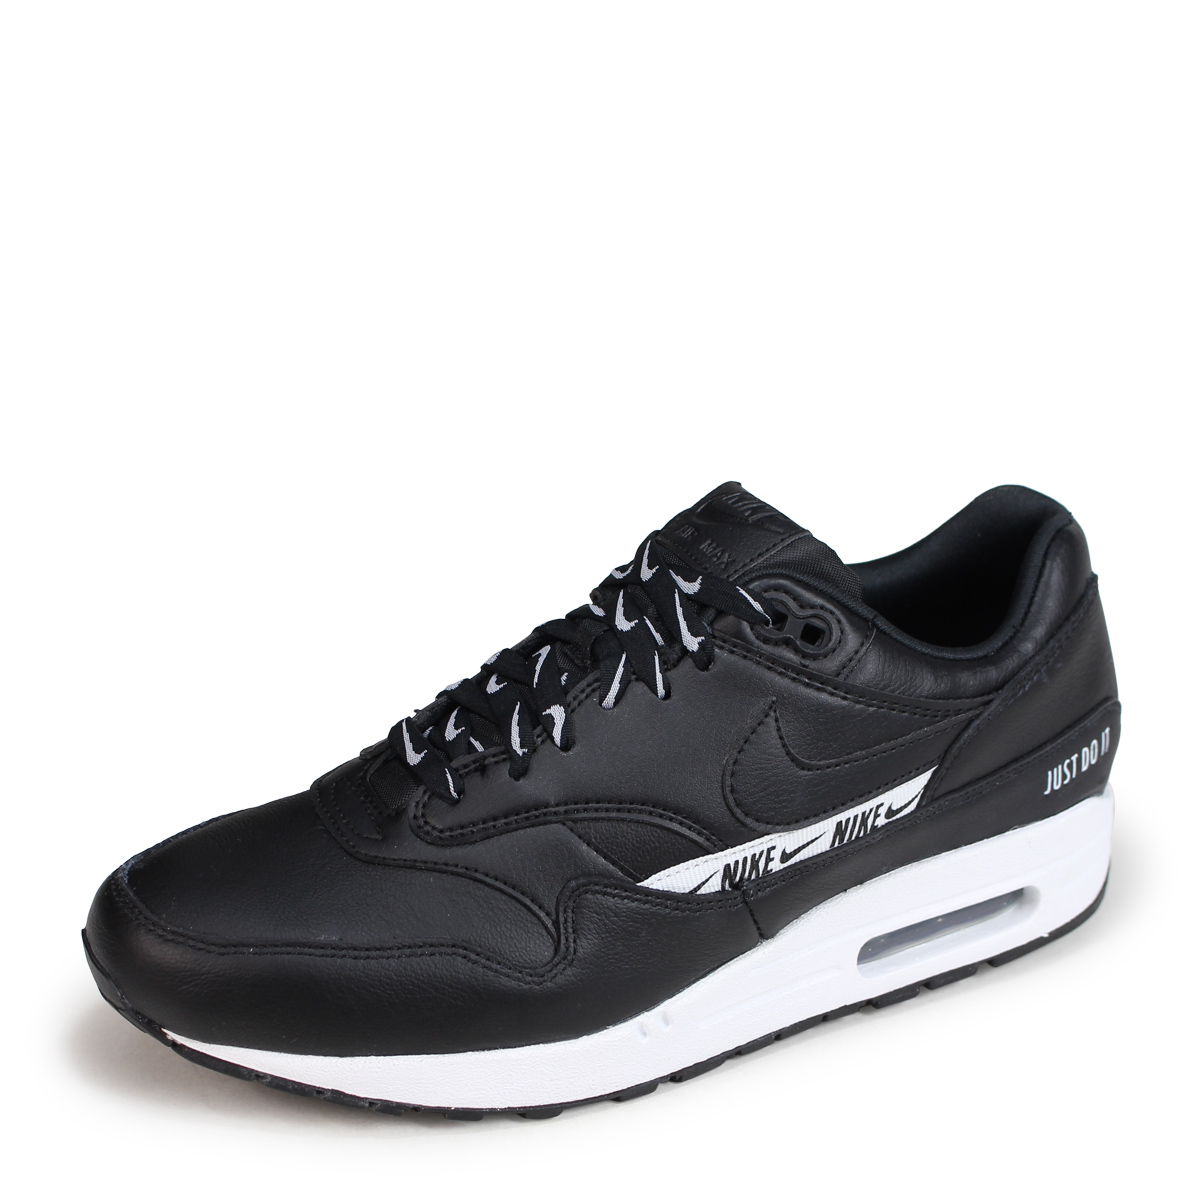 Nike Wmns Air Max 1 SE 881101 005 Black Version